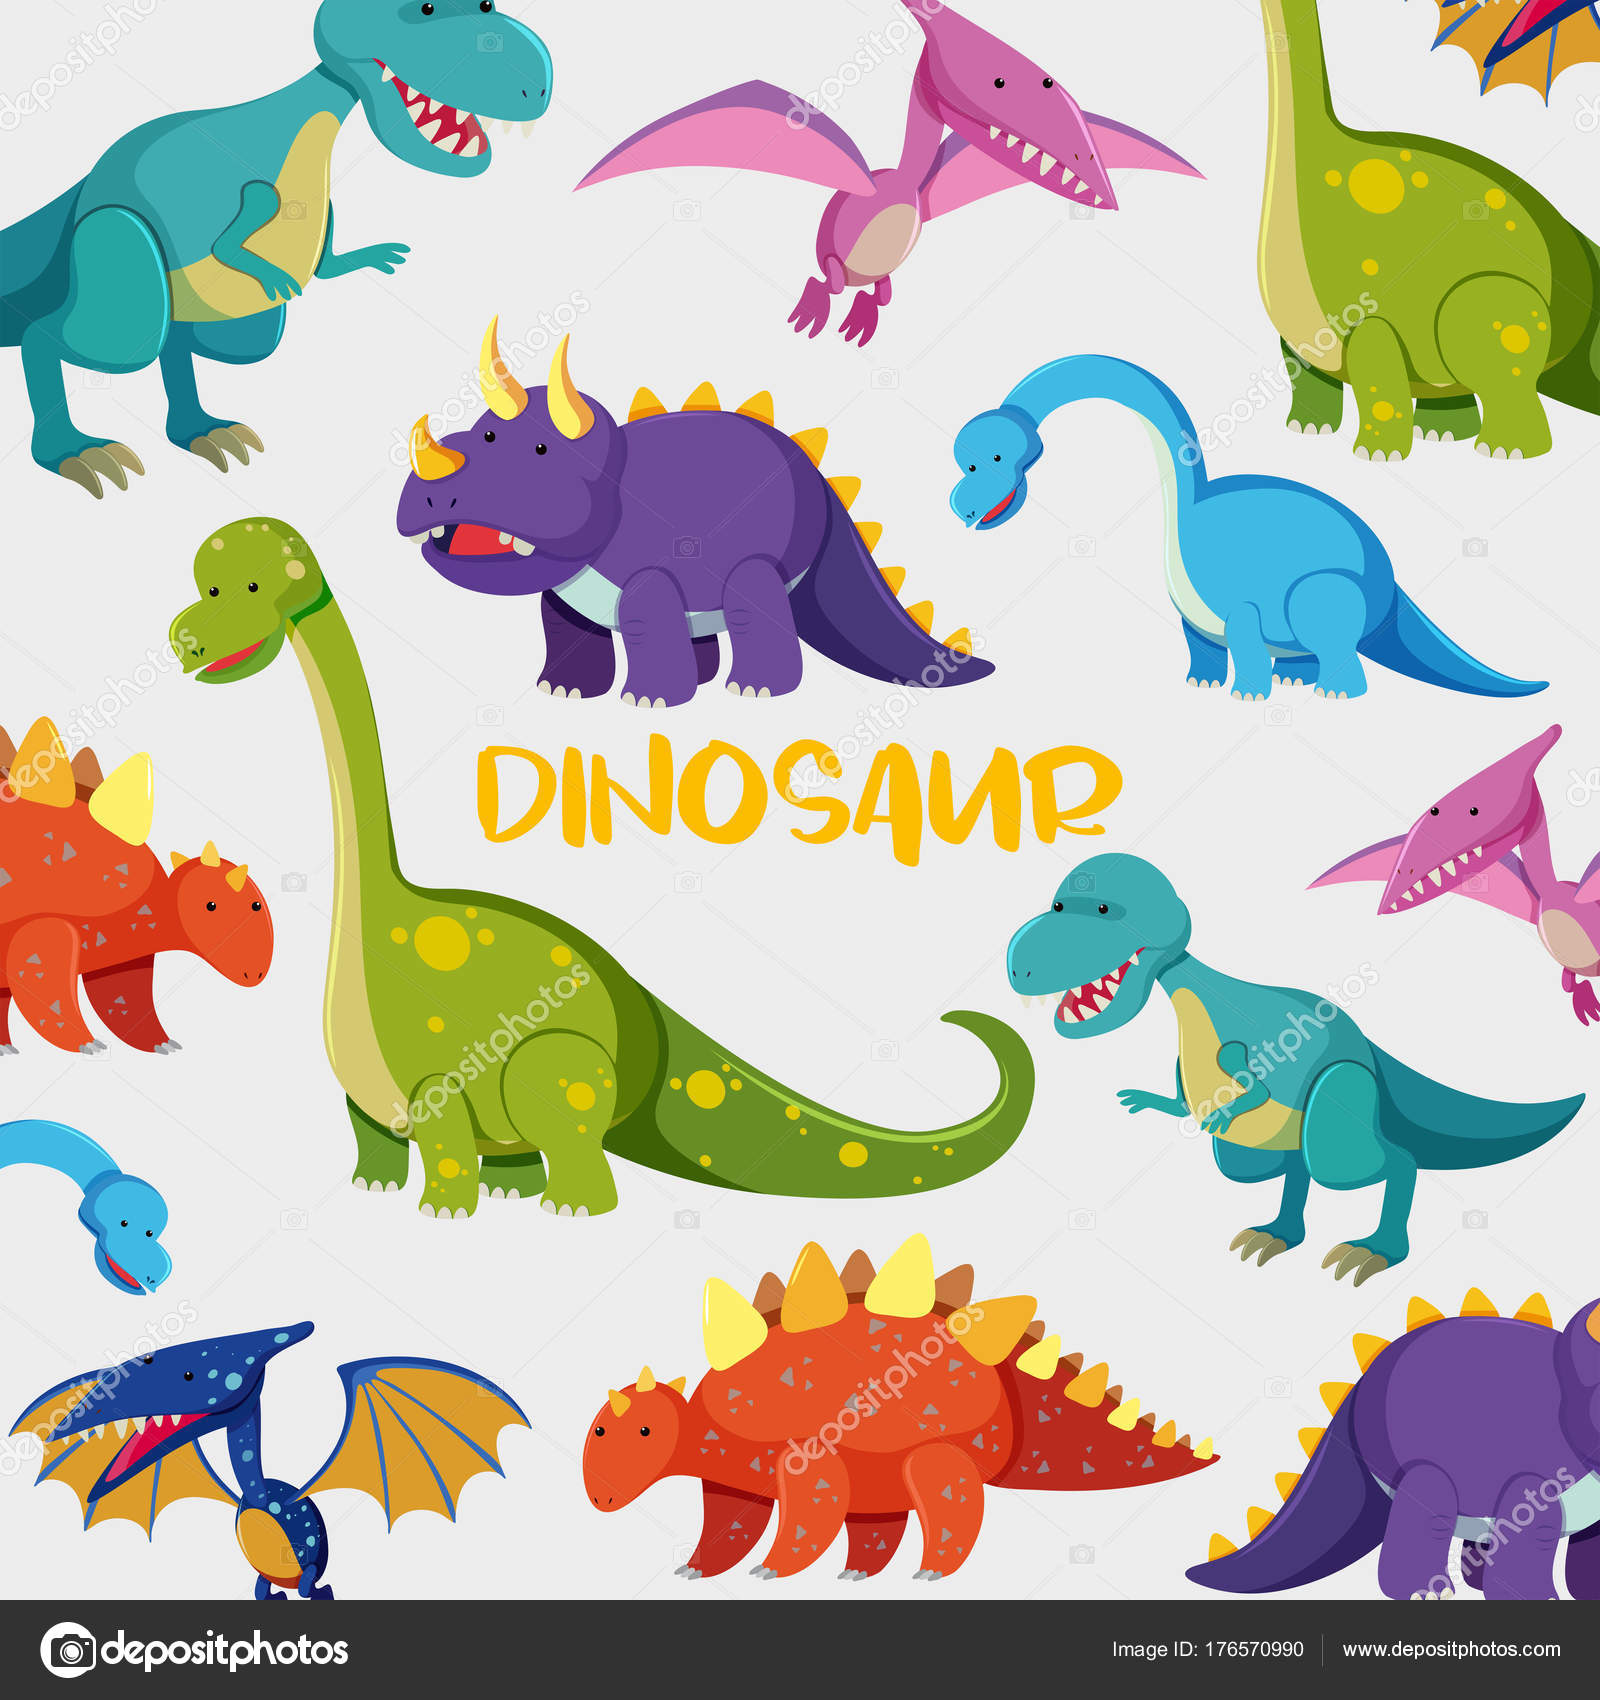 Background Design With Many Cute Dinosaurs Stock Vector C Brgfx